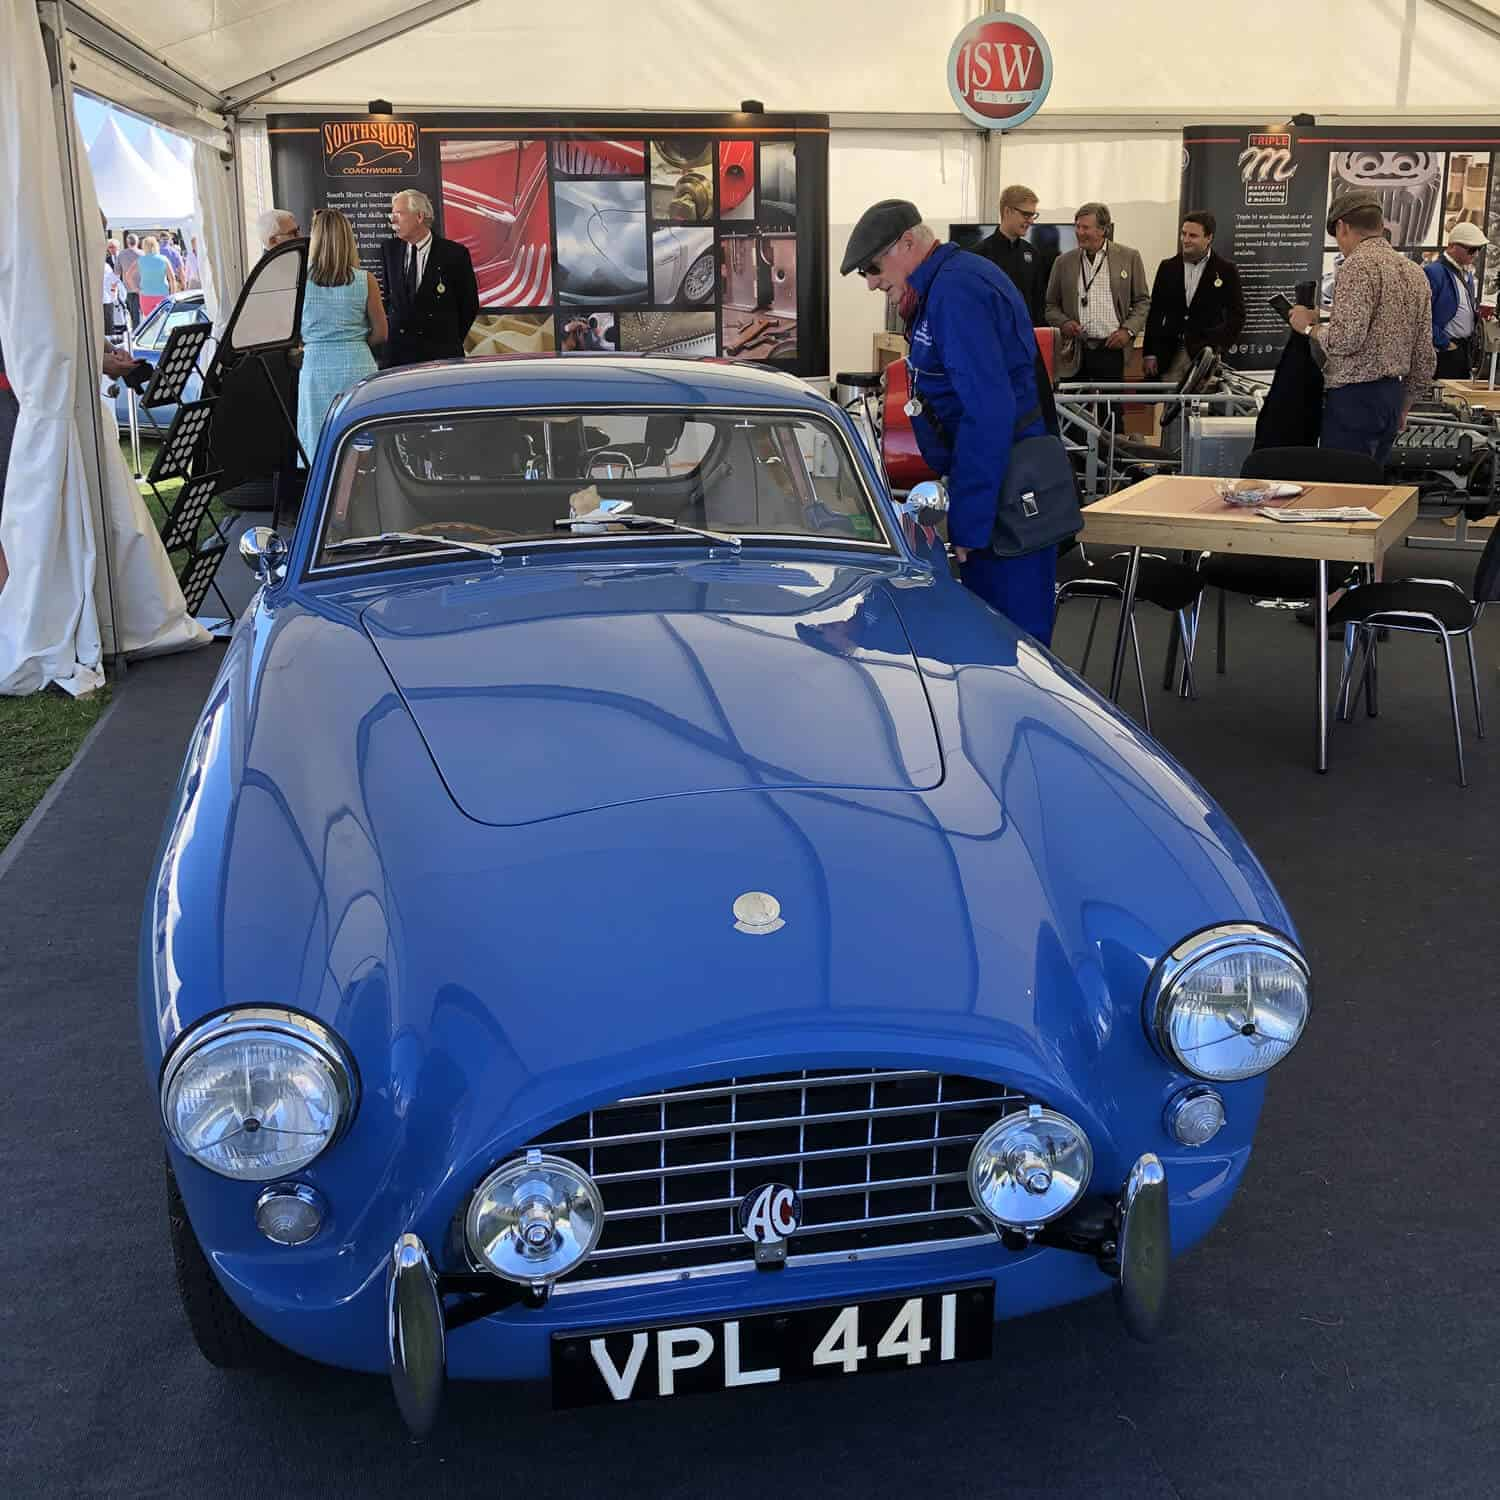 AC Bluebird at Goodwood Revival 2019 on JSW stand